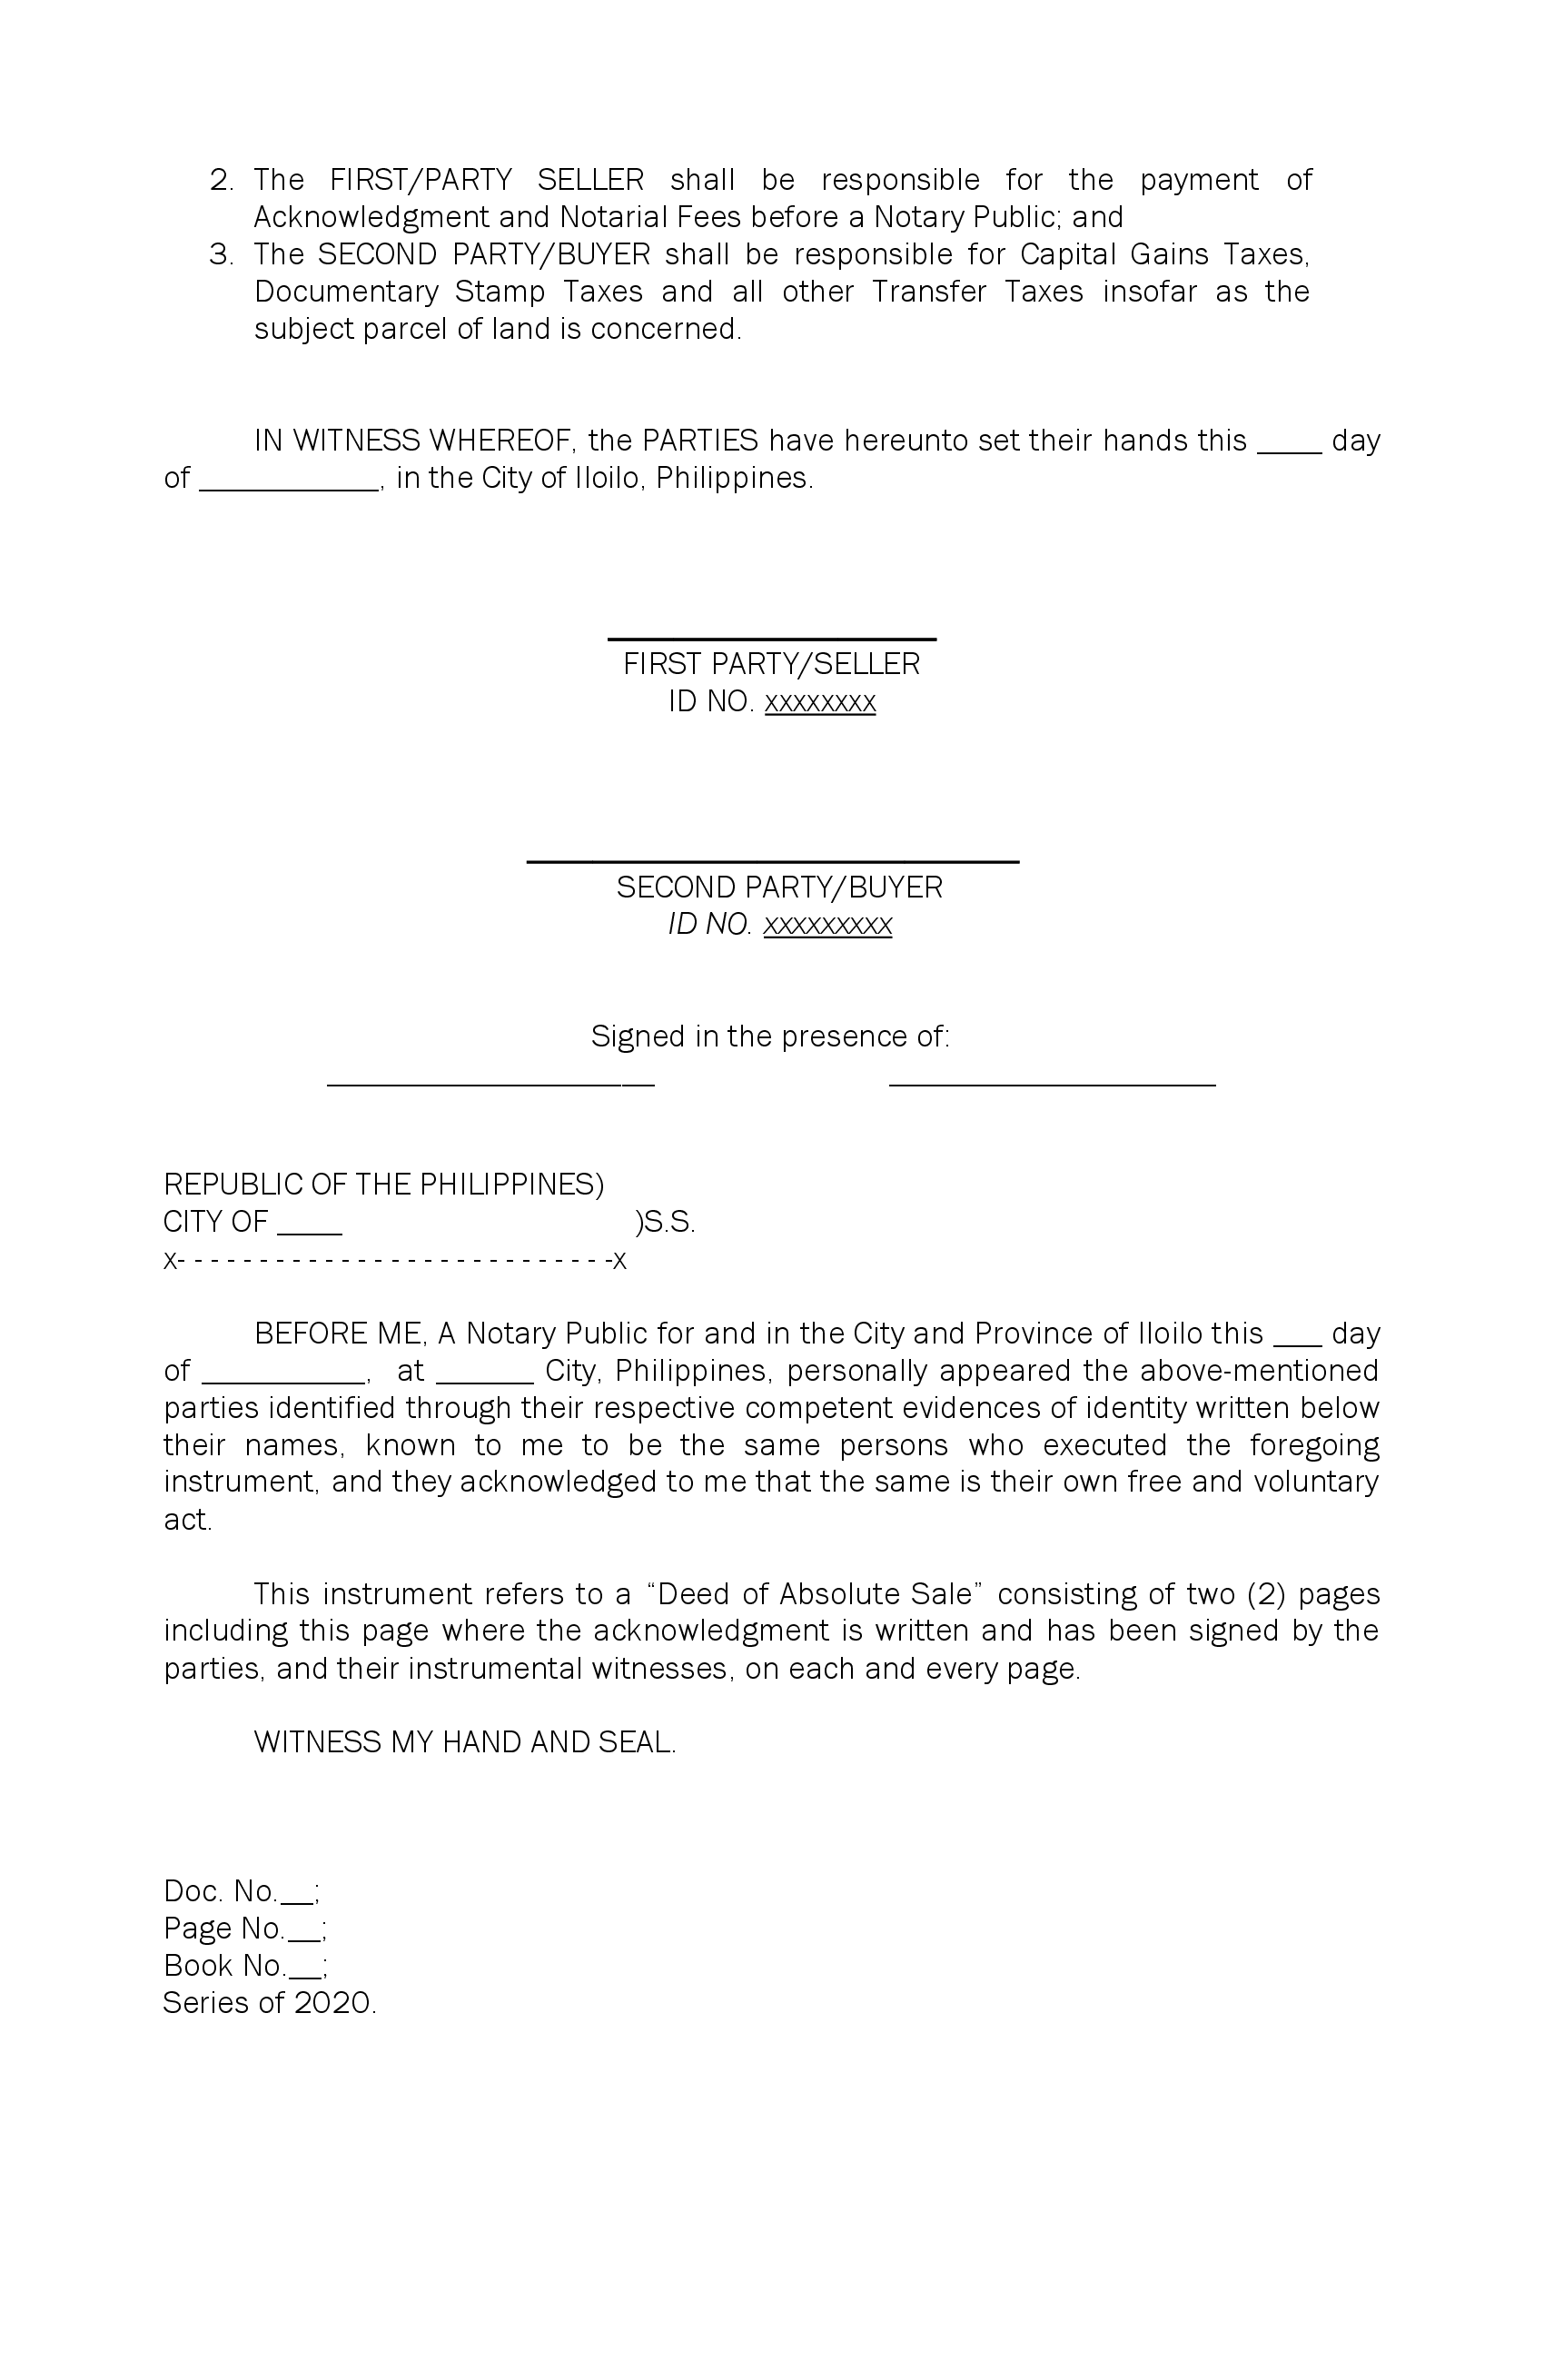 Deed of Absolute Sale Sample page two